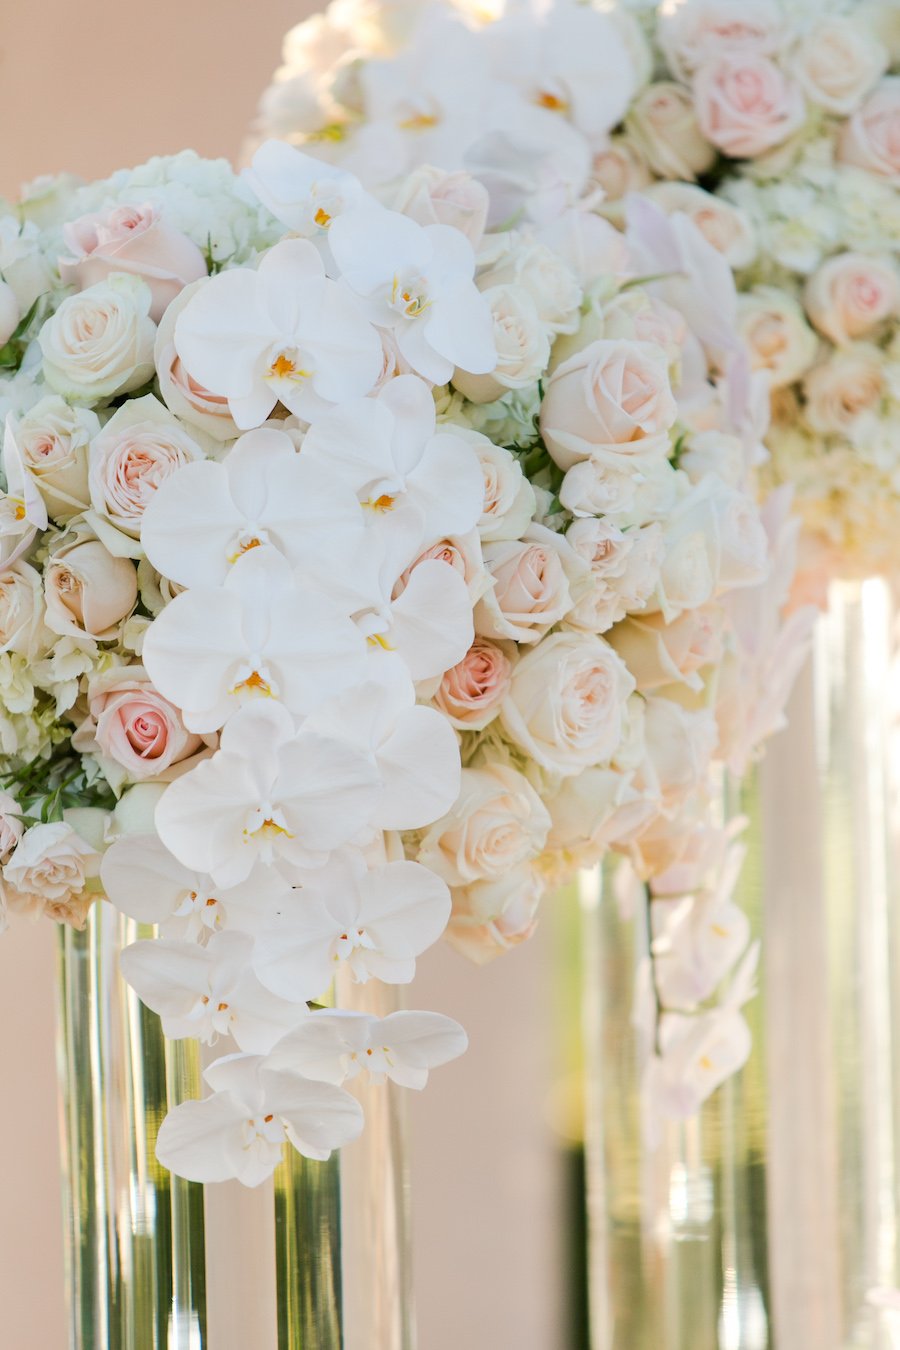 Pure Lavish Events, Pelican Hill Weddings, Flowers By Cina, Kaysha Weiner, Hoo Films, Vivian Tran Artistry, Sweetly Said Press, Heidi Davidson Design, Naples Strings, Brannan Entertainment, Focus Photo Suites, Strunz & Farah, Create A Party Rentals, Grace And Honey Cakes, In N Out Burger